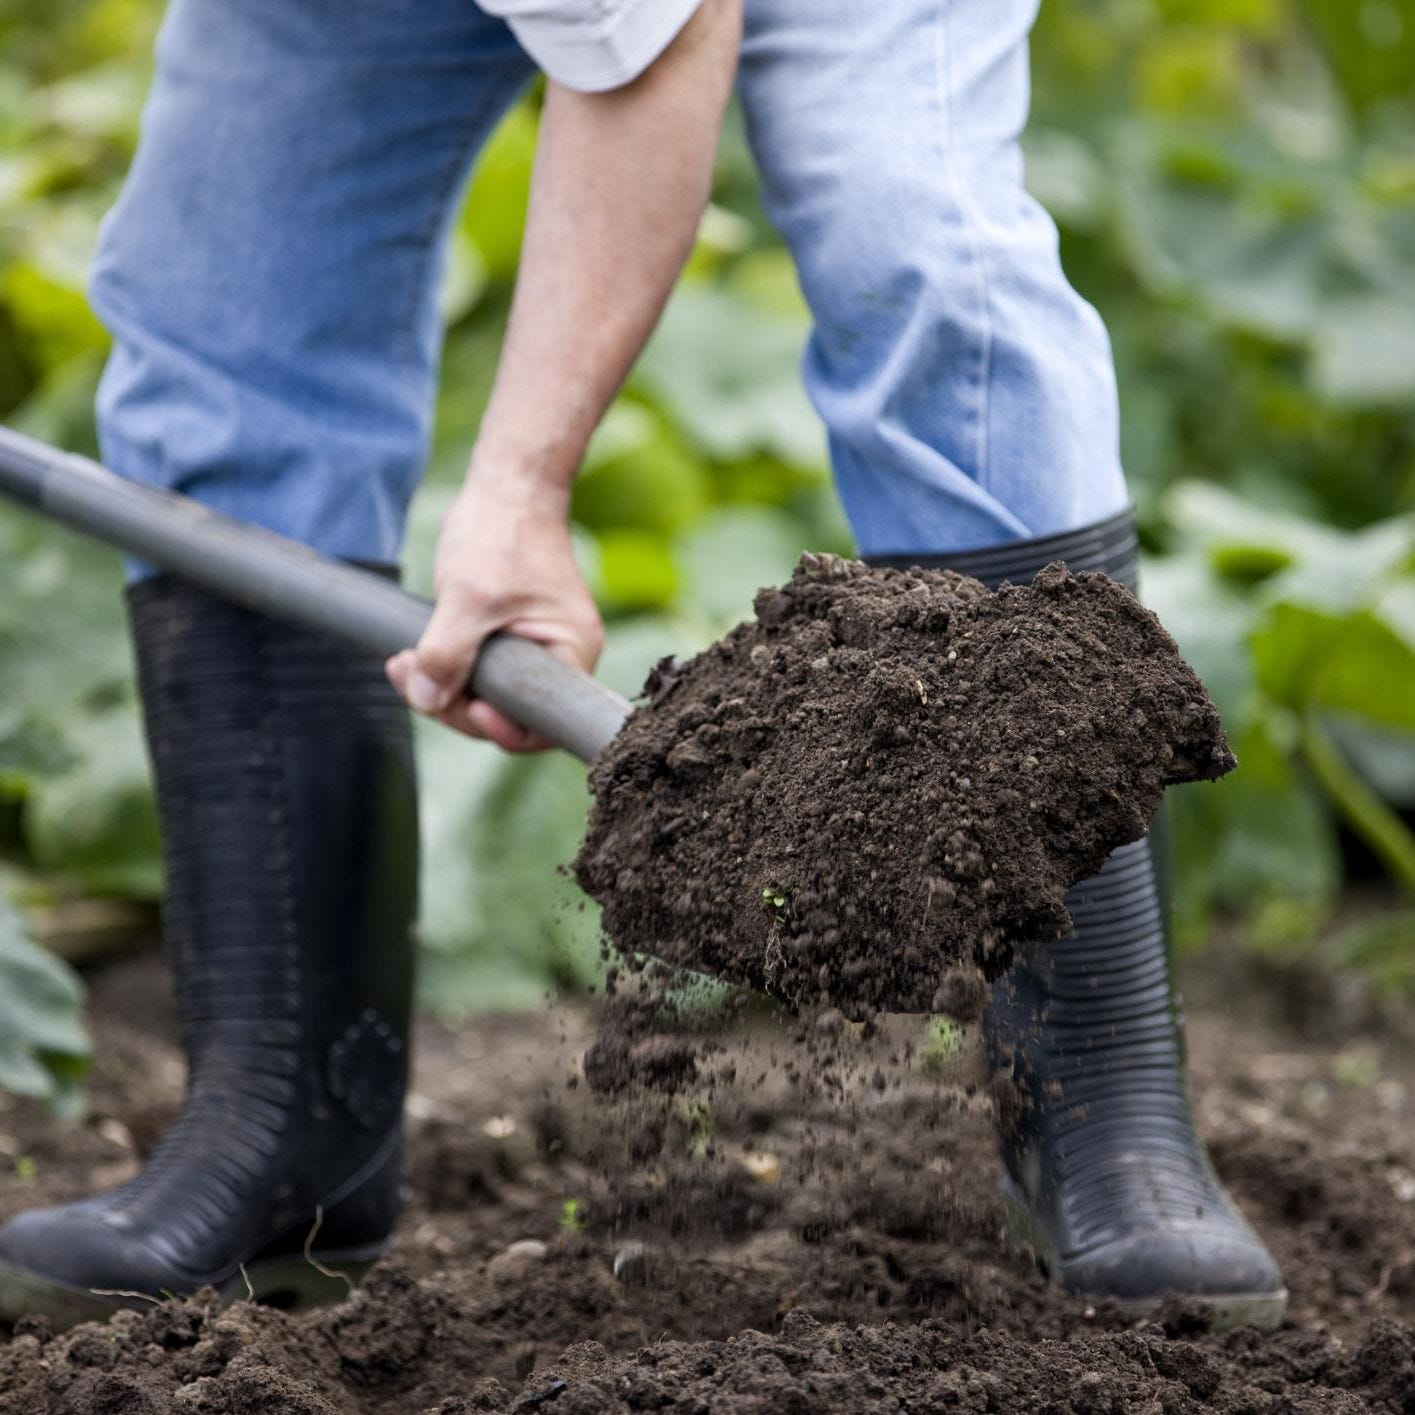 Cut down your emissions by composting